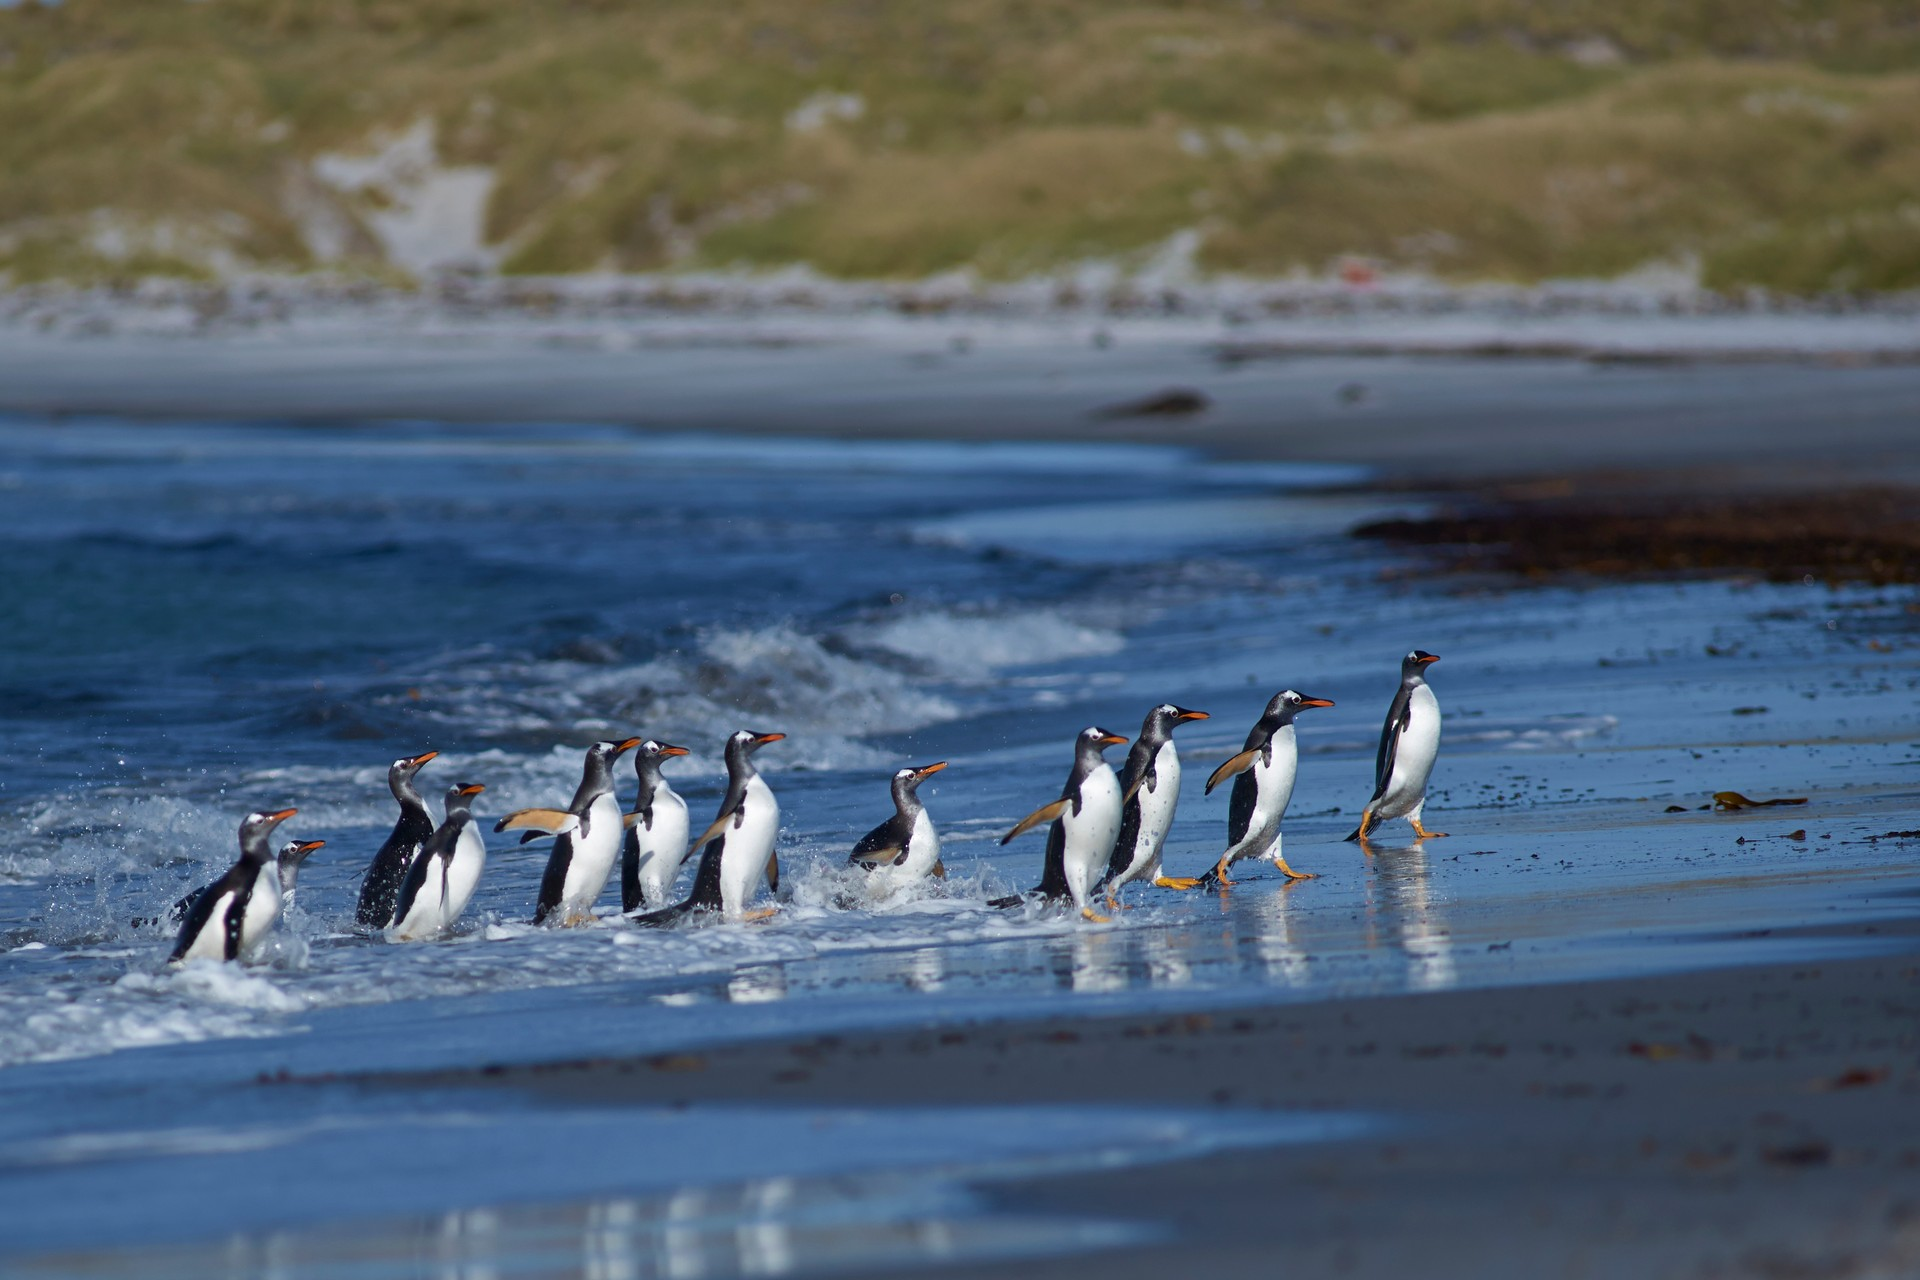 Falkland Islands penguins on beach